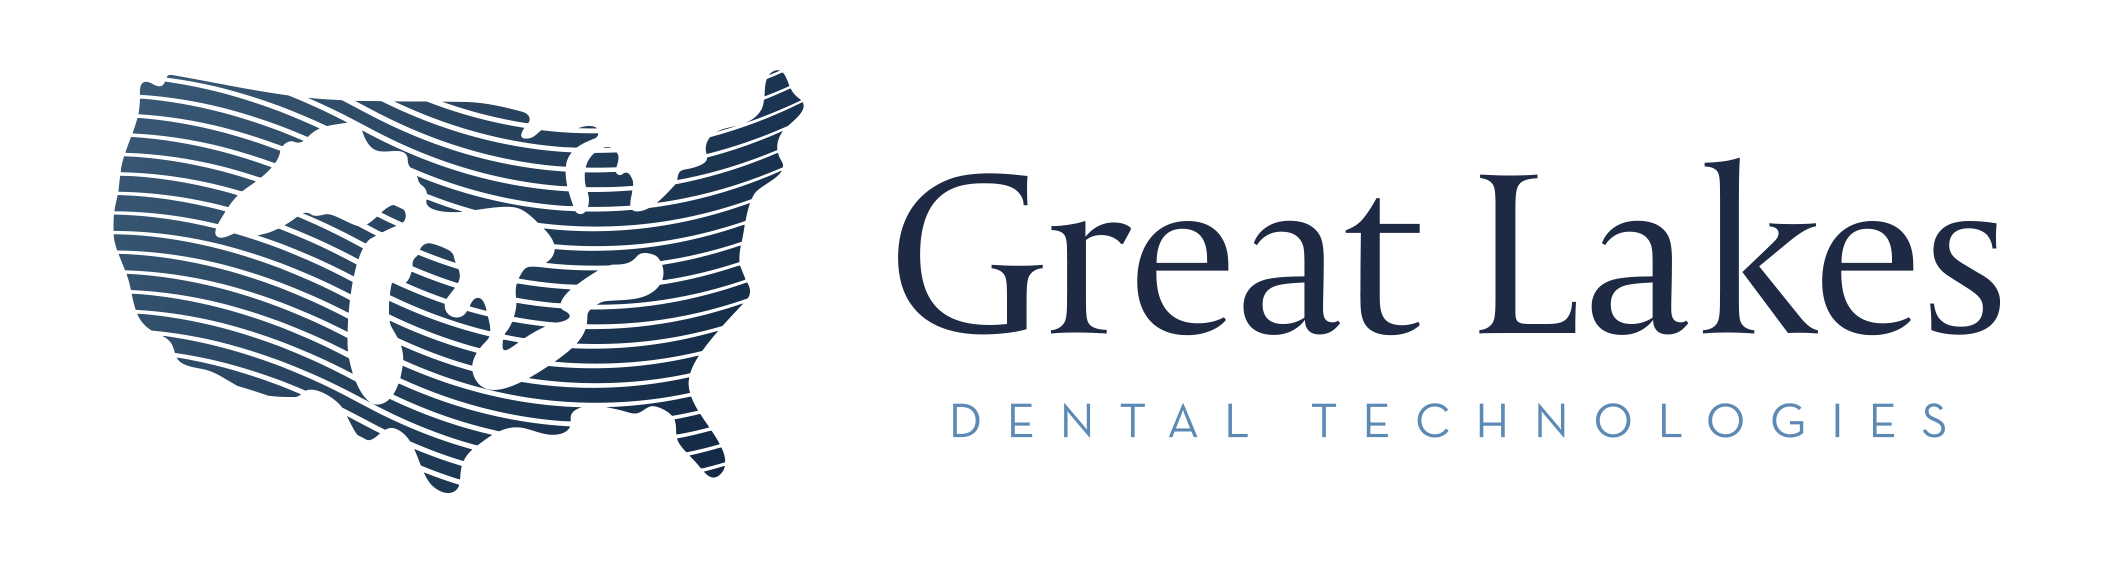 Great Lakes Dental Technologies